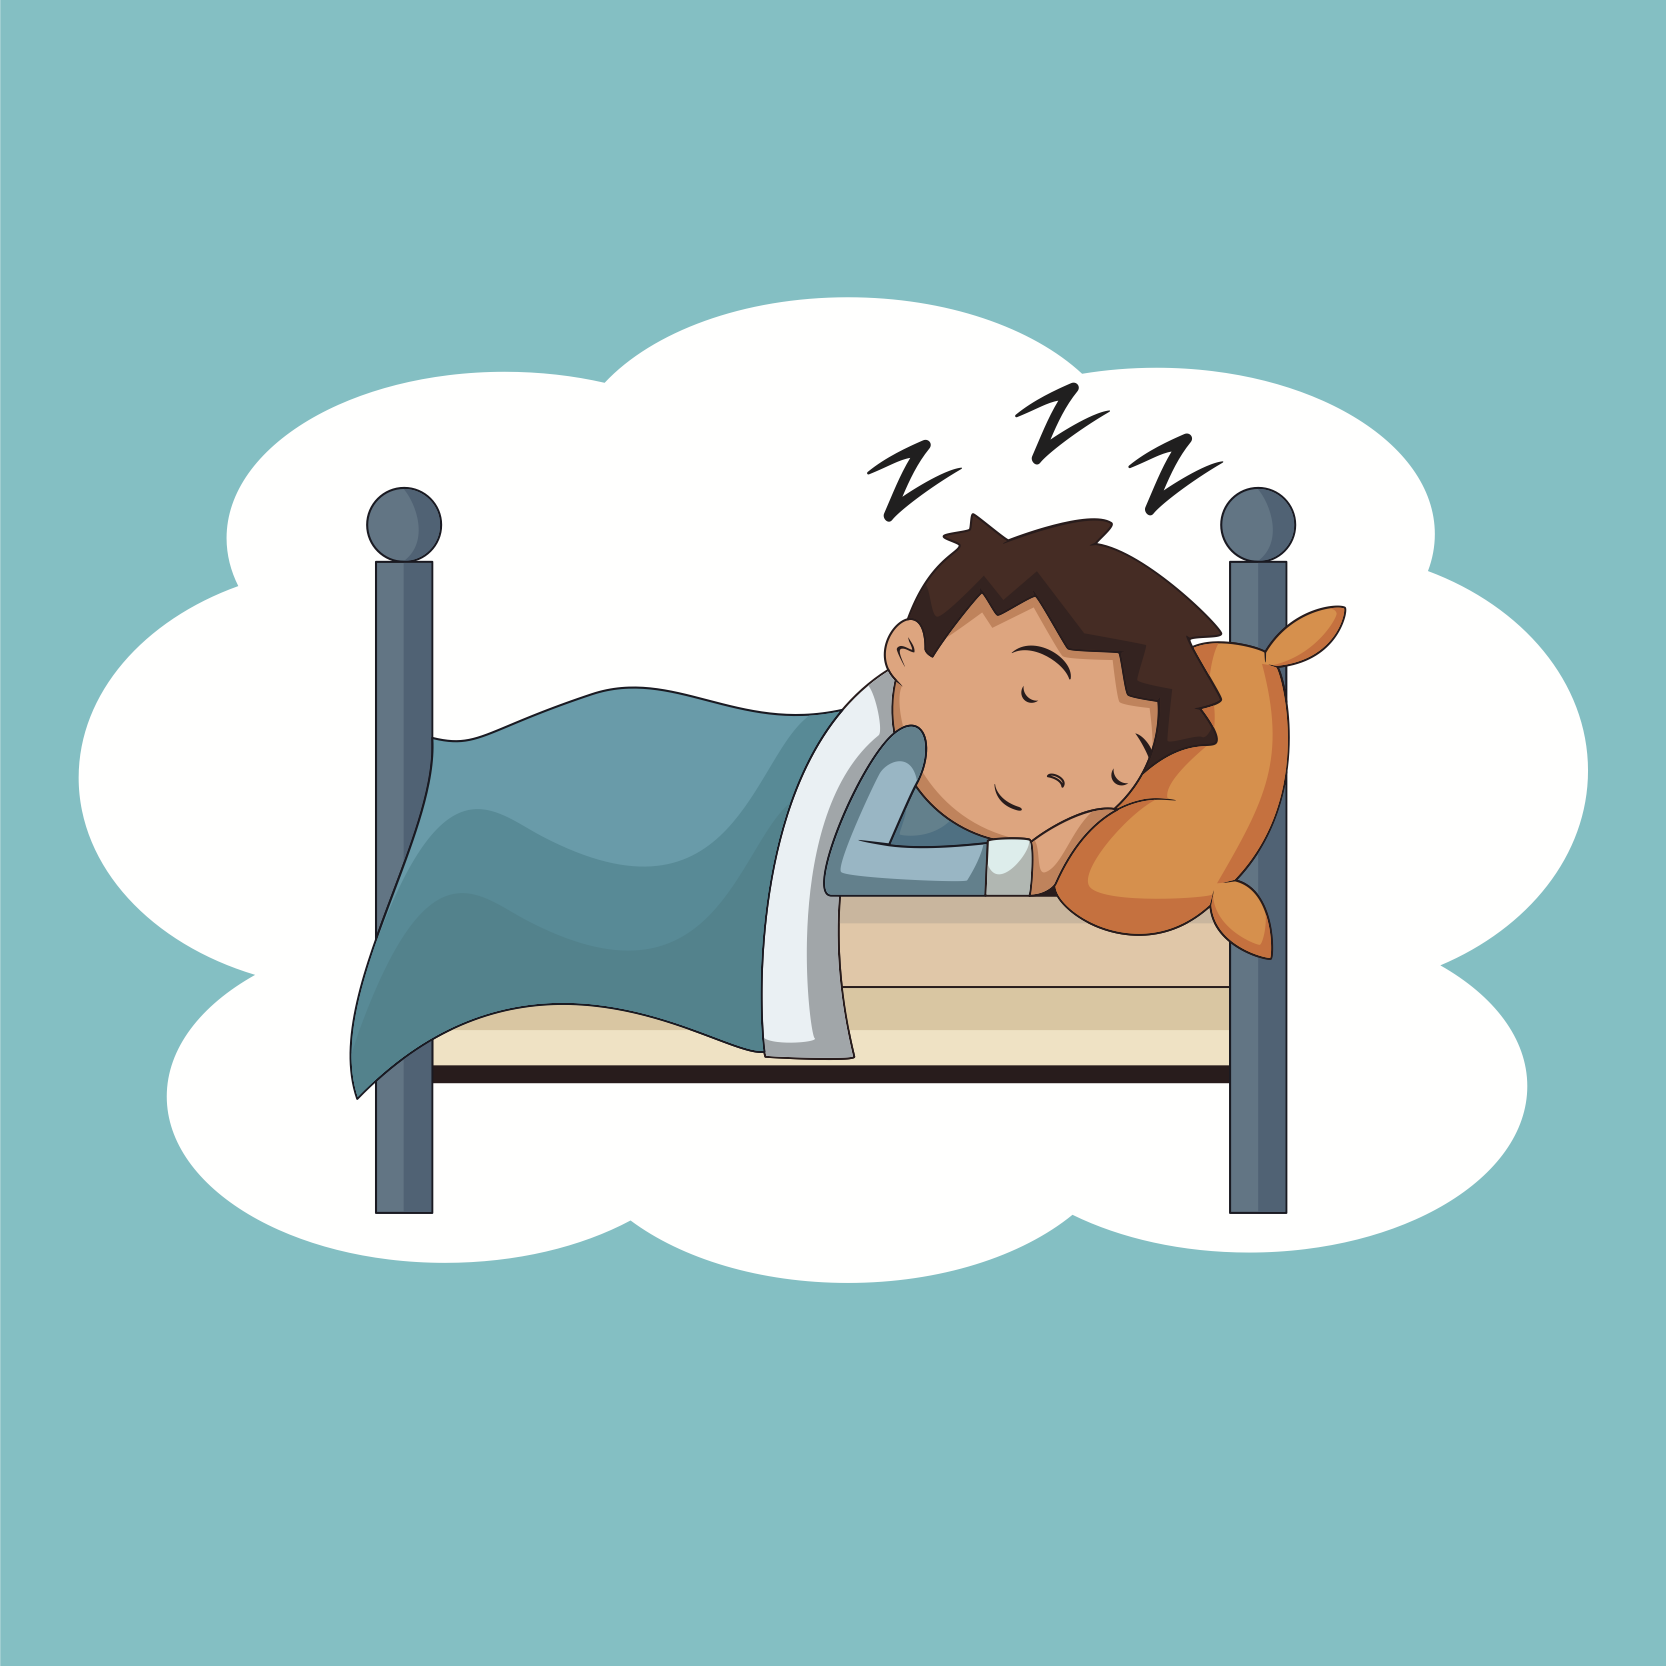 Clipart kid sleeping clipart free download Kid Going To Bed PNG Transparent Kid Going To Bed.PNG Images. | PlusPNG clipart free download